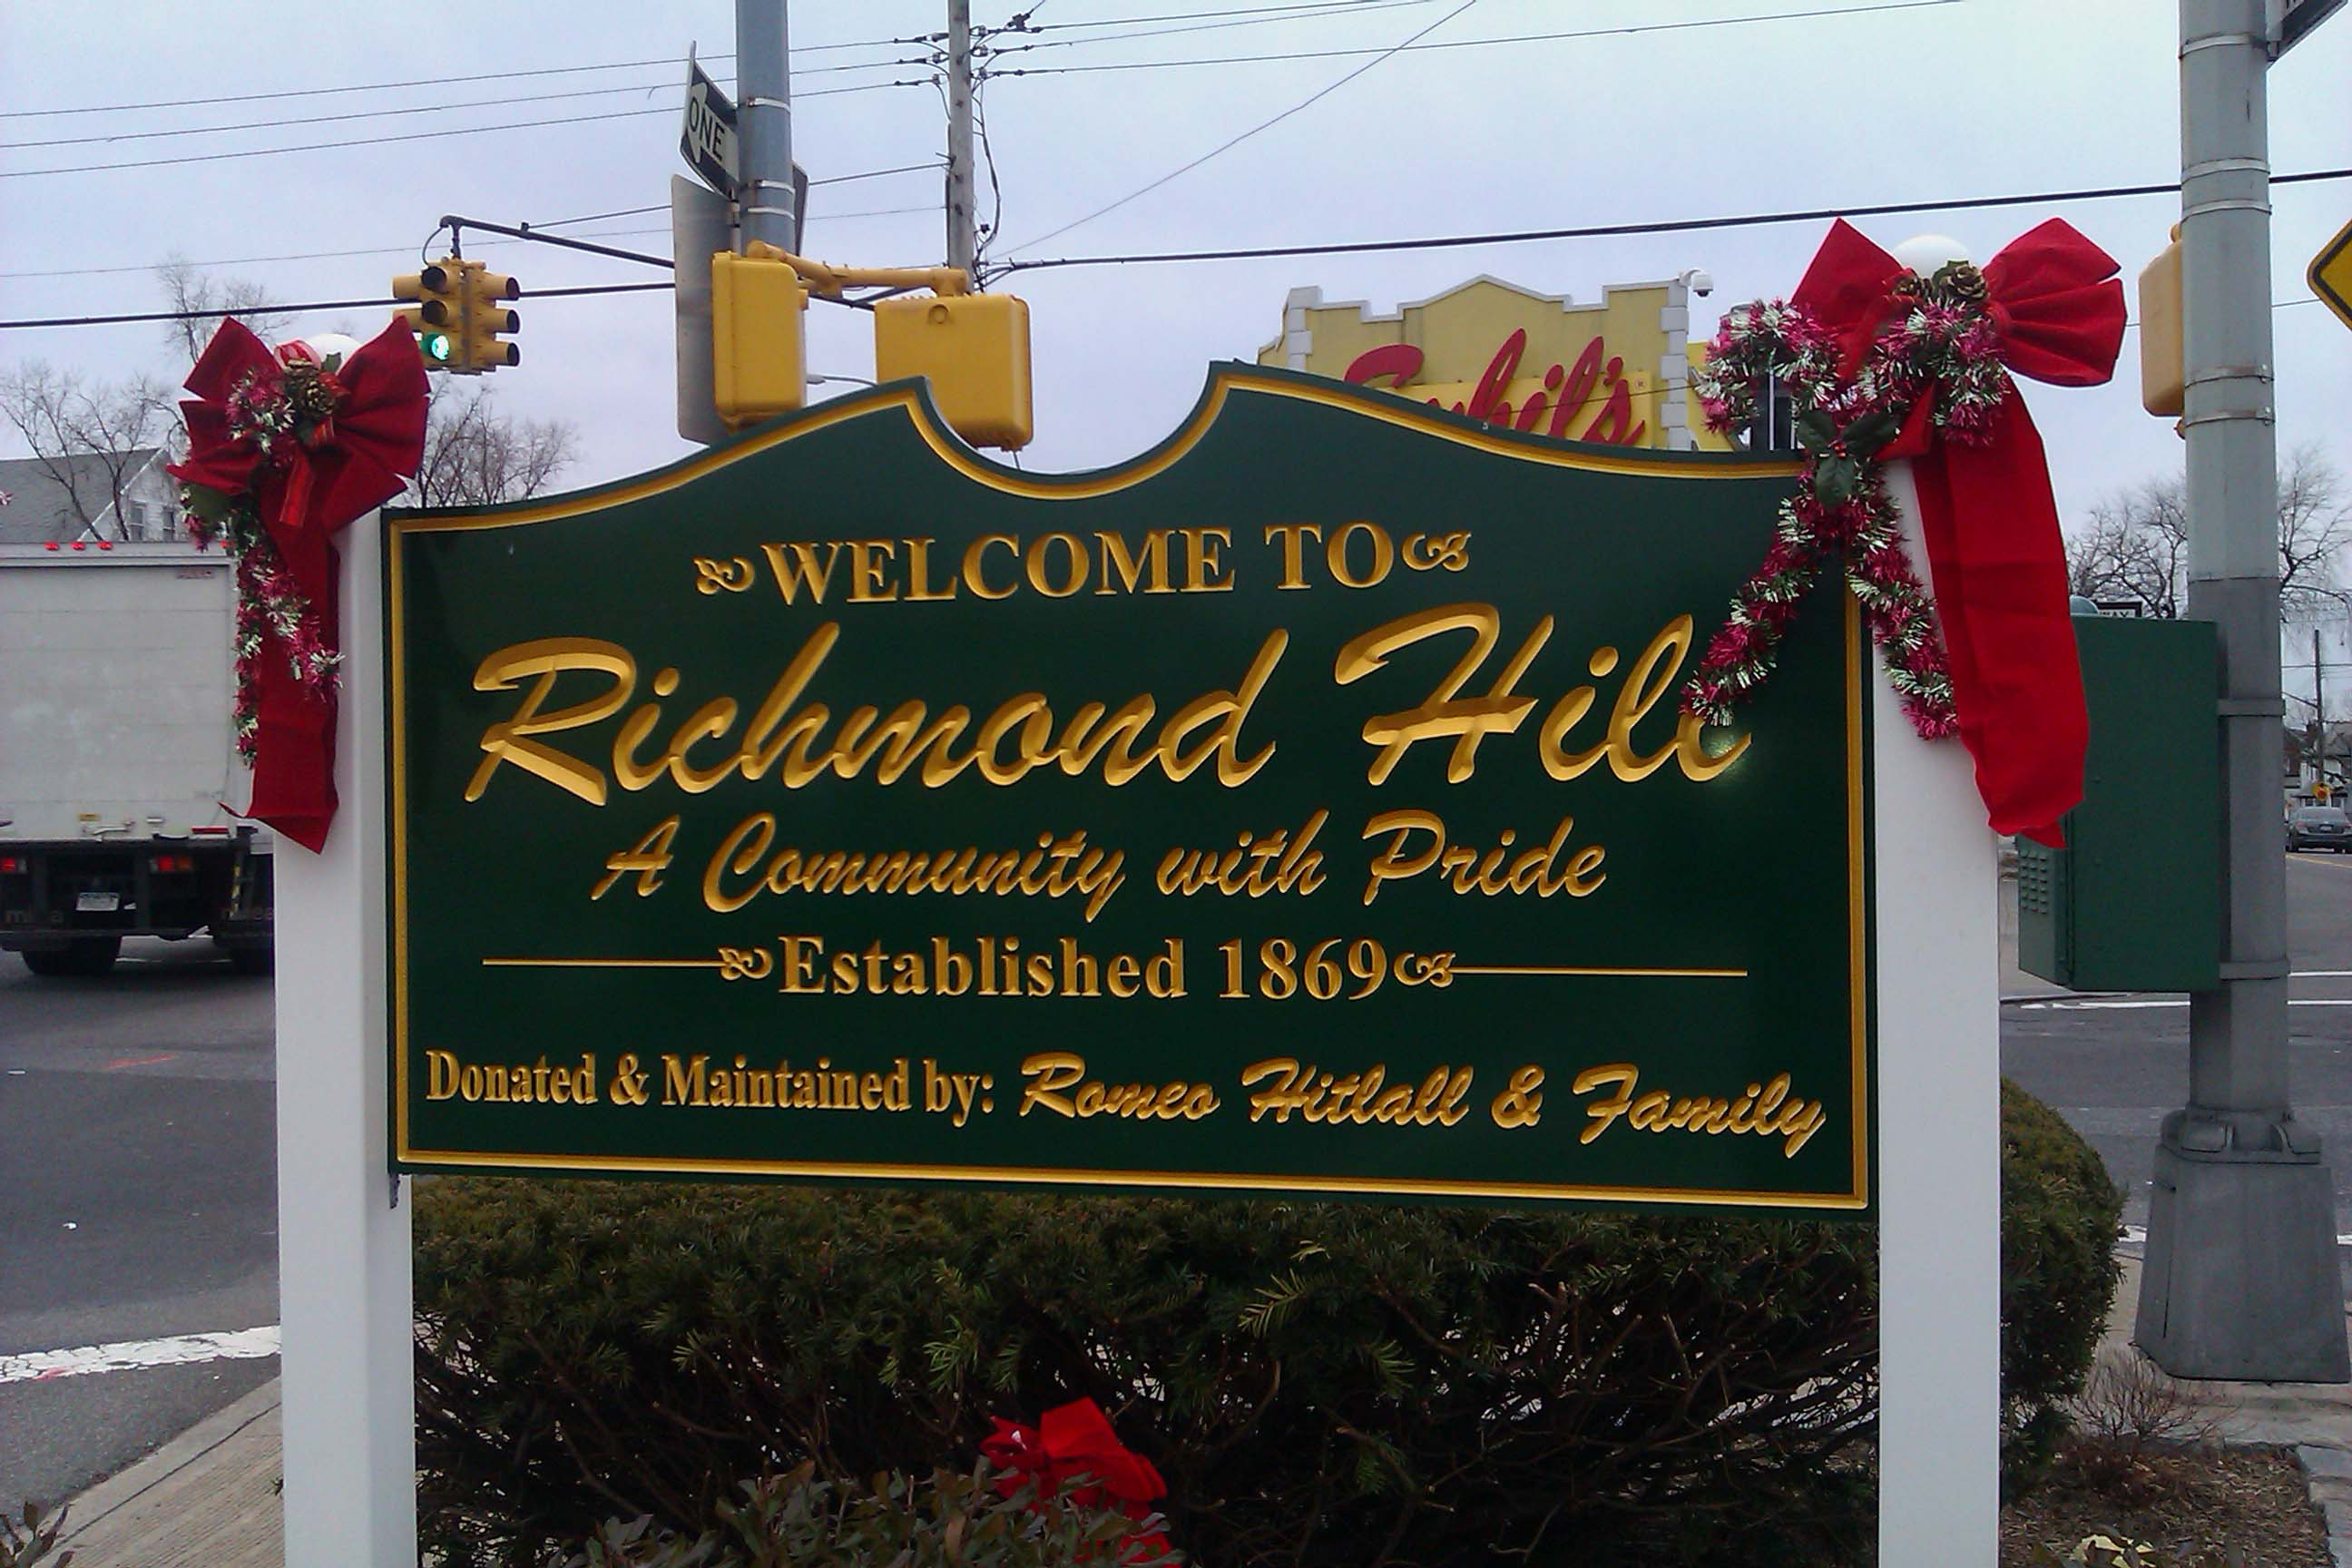 Official sign erected to welcome visitors to Richmond Hill